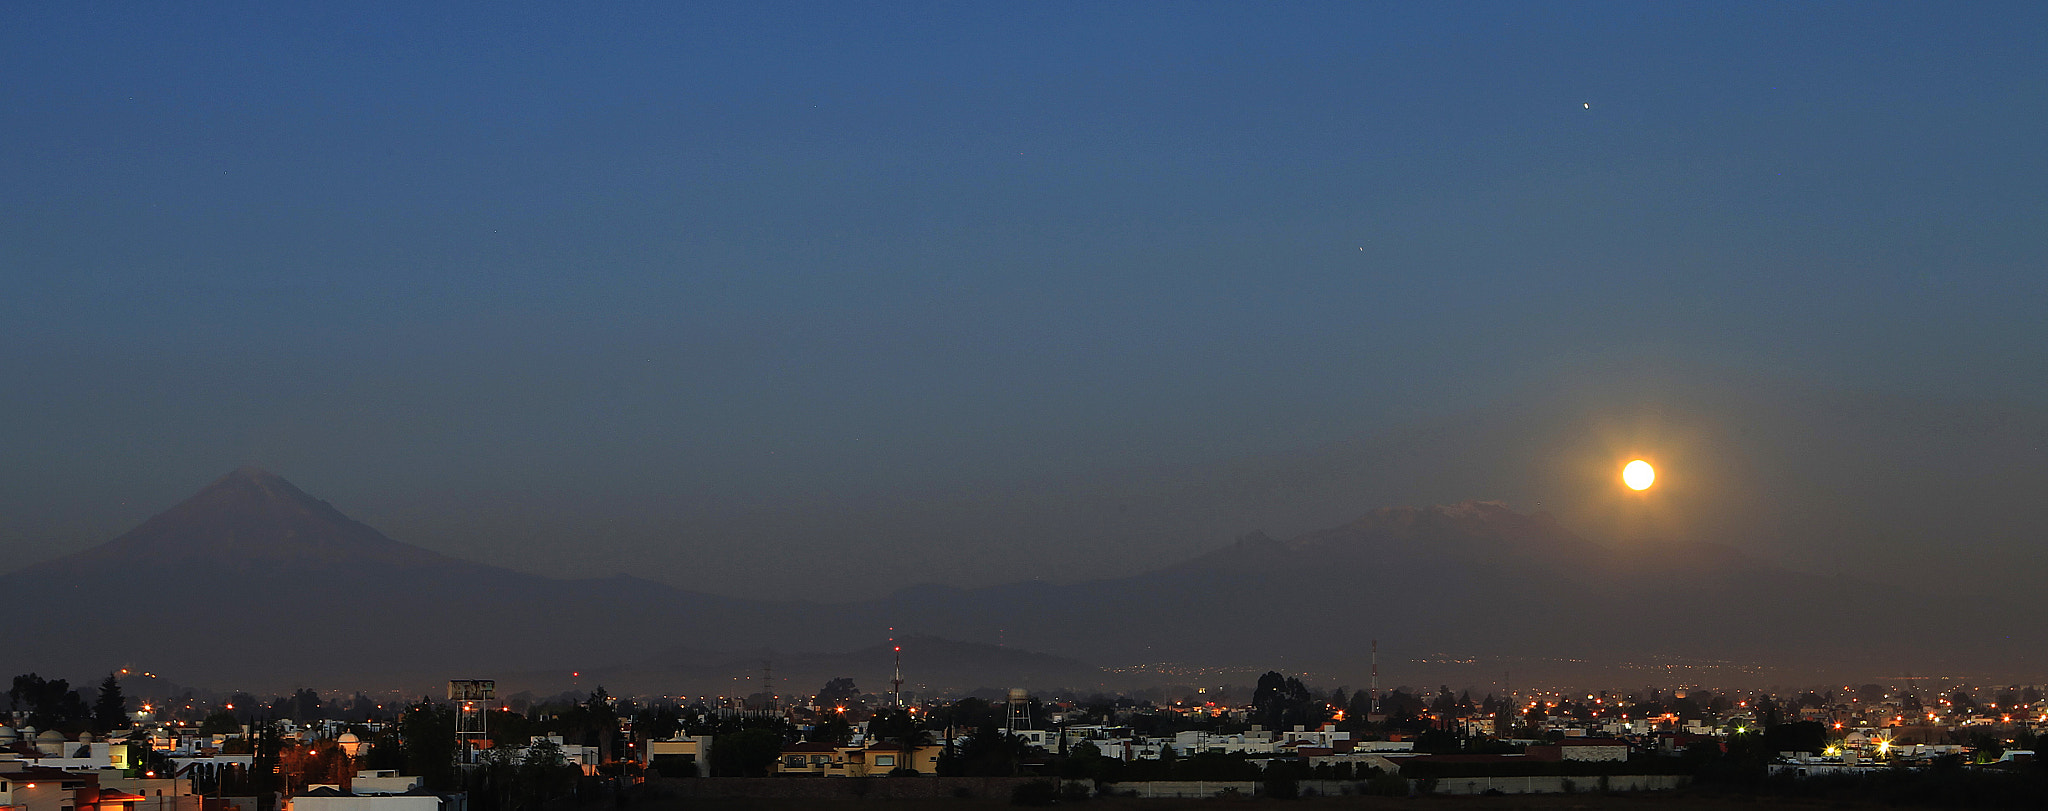 Photograph Full moon  and volcanoes by Cristobal Garciaferro Rubio on 500px